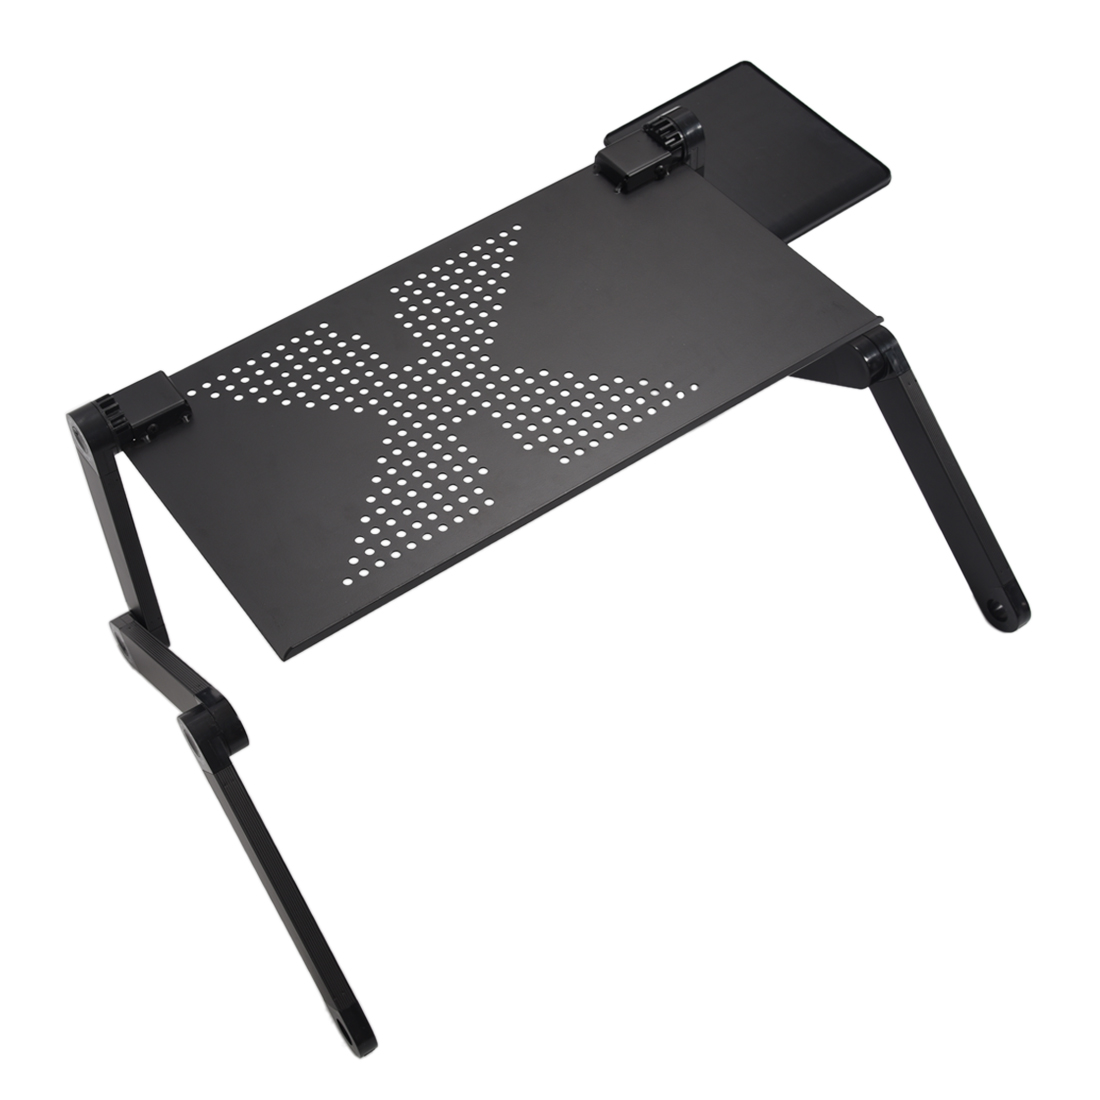 WSFS Hot Portable Foldable Adjustable Laptop Desk Computer Table Stand Tray For Sofa Bed Black(China)